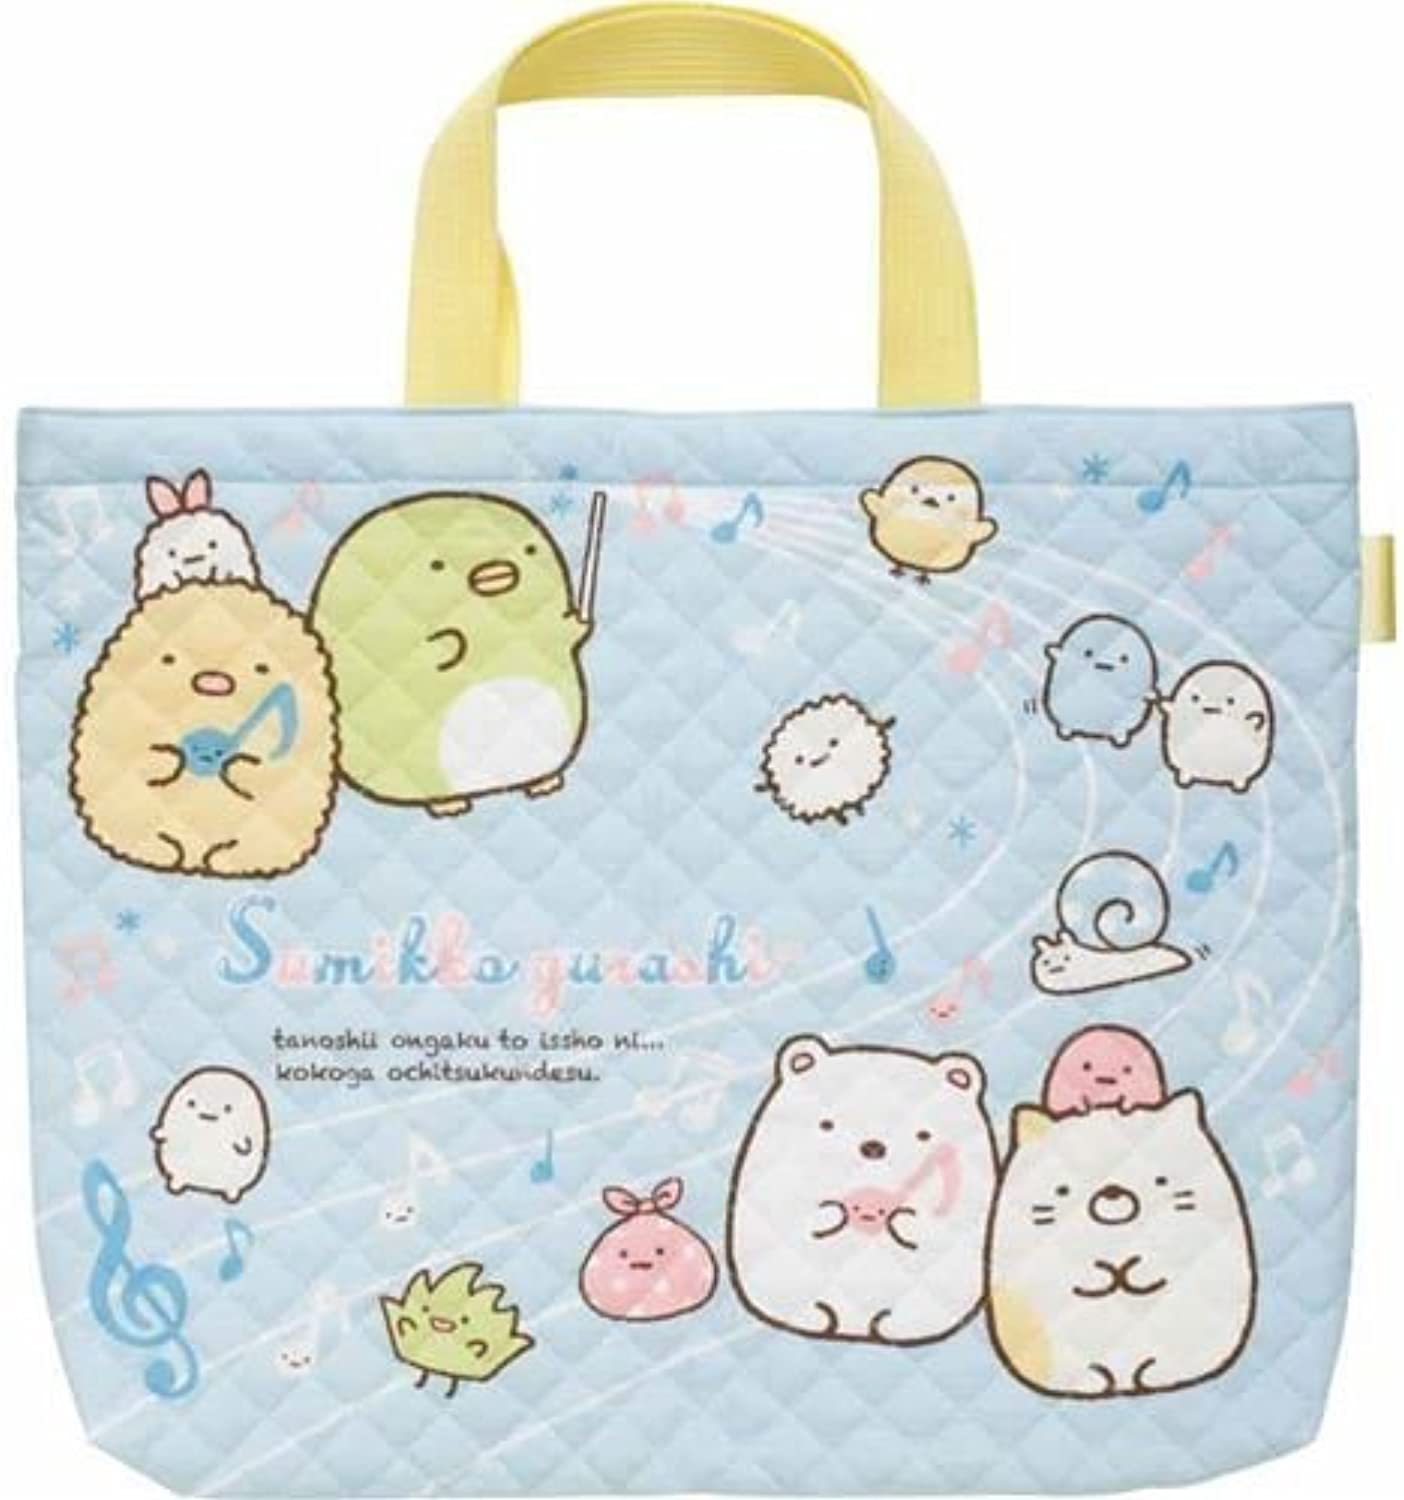 bluee Sumikkogurashi shy animal music note cloth handbag from Japan